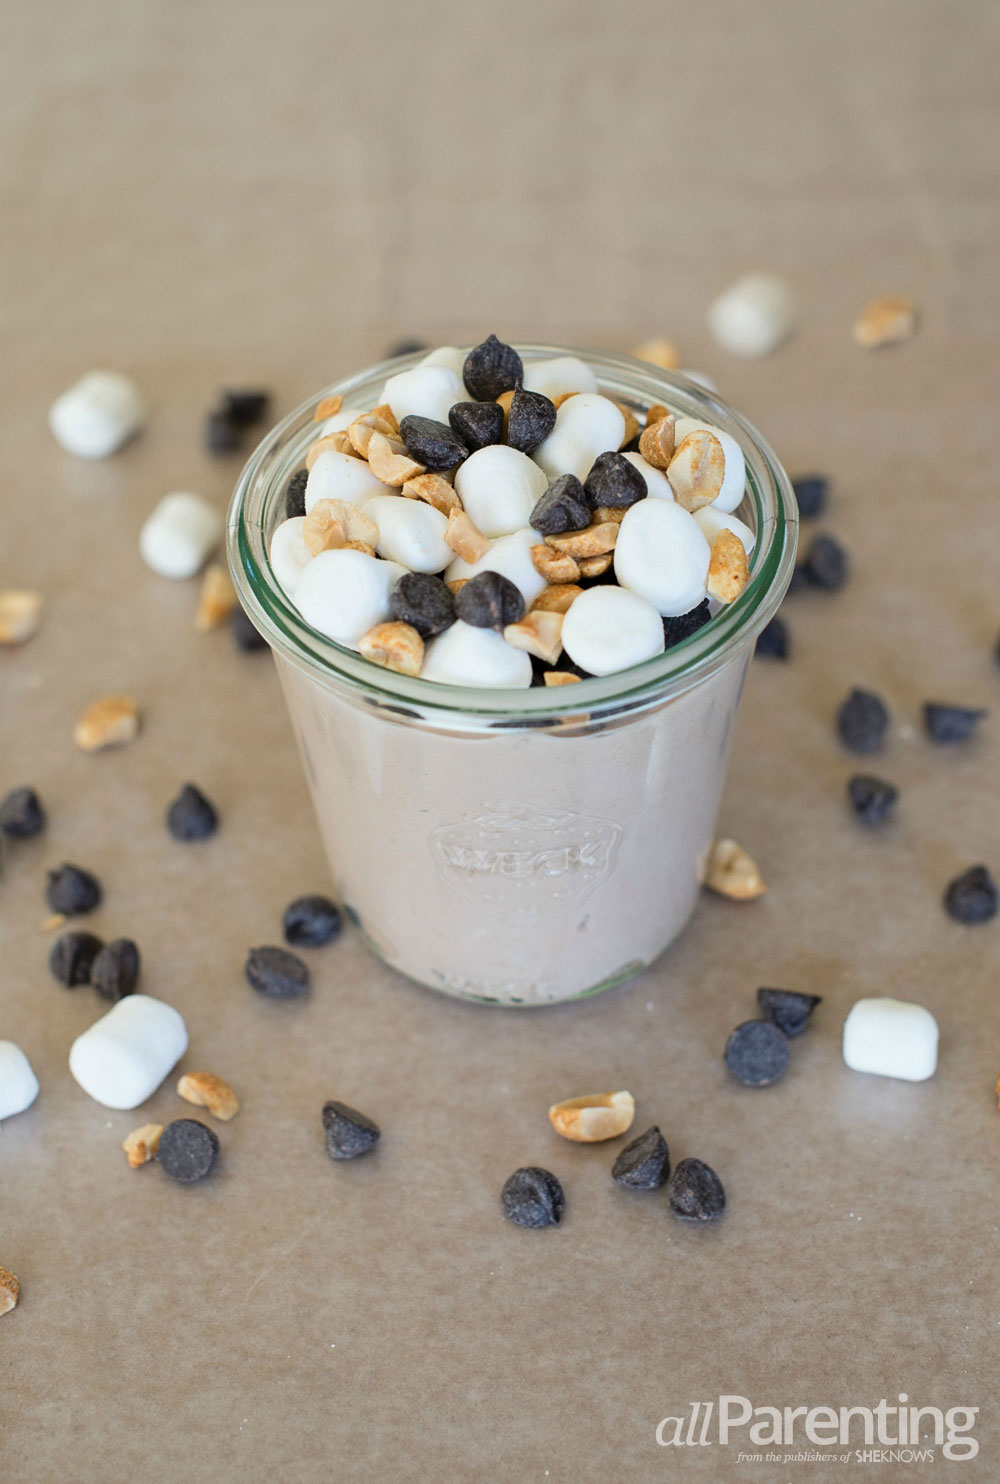 allParenting Nutella rocky road parfaits